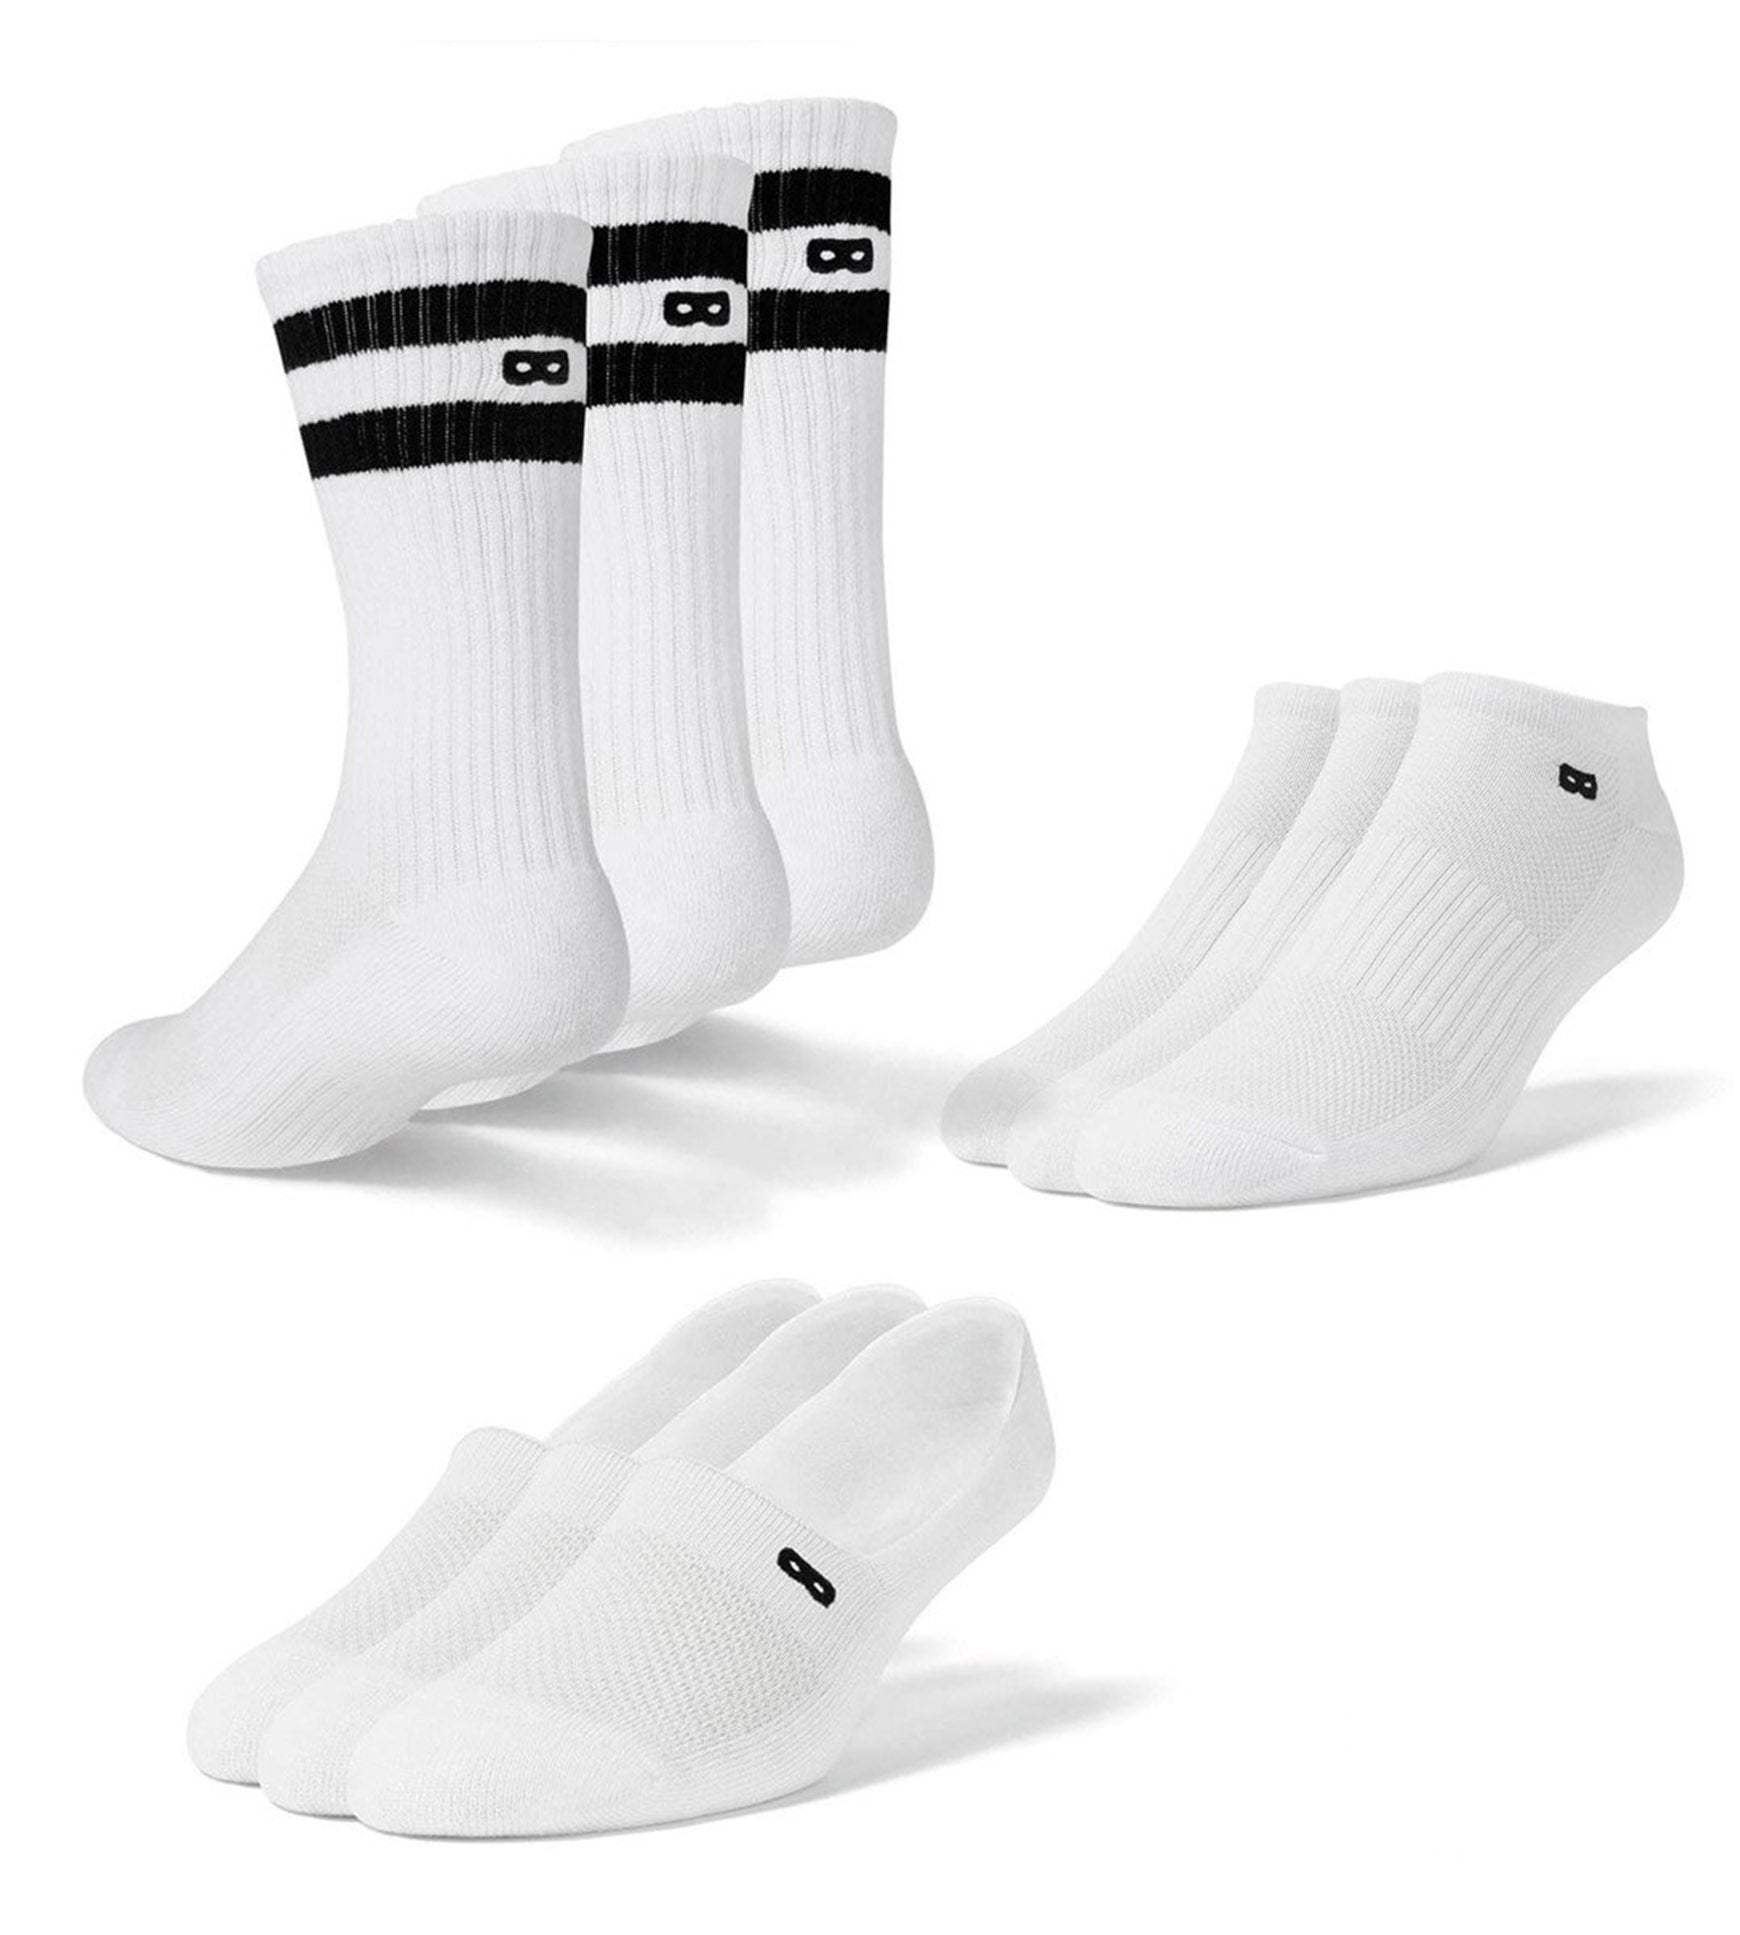 Women's Great Whiteout Mix Socks 9 Pack